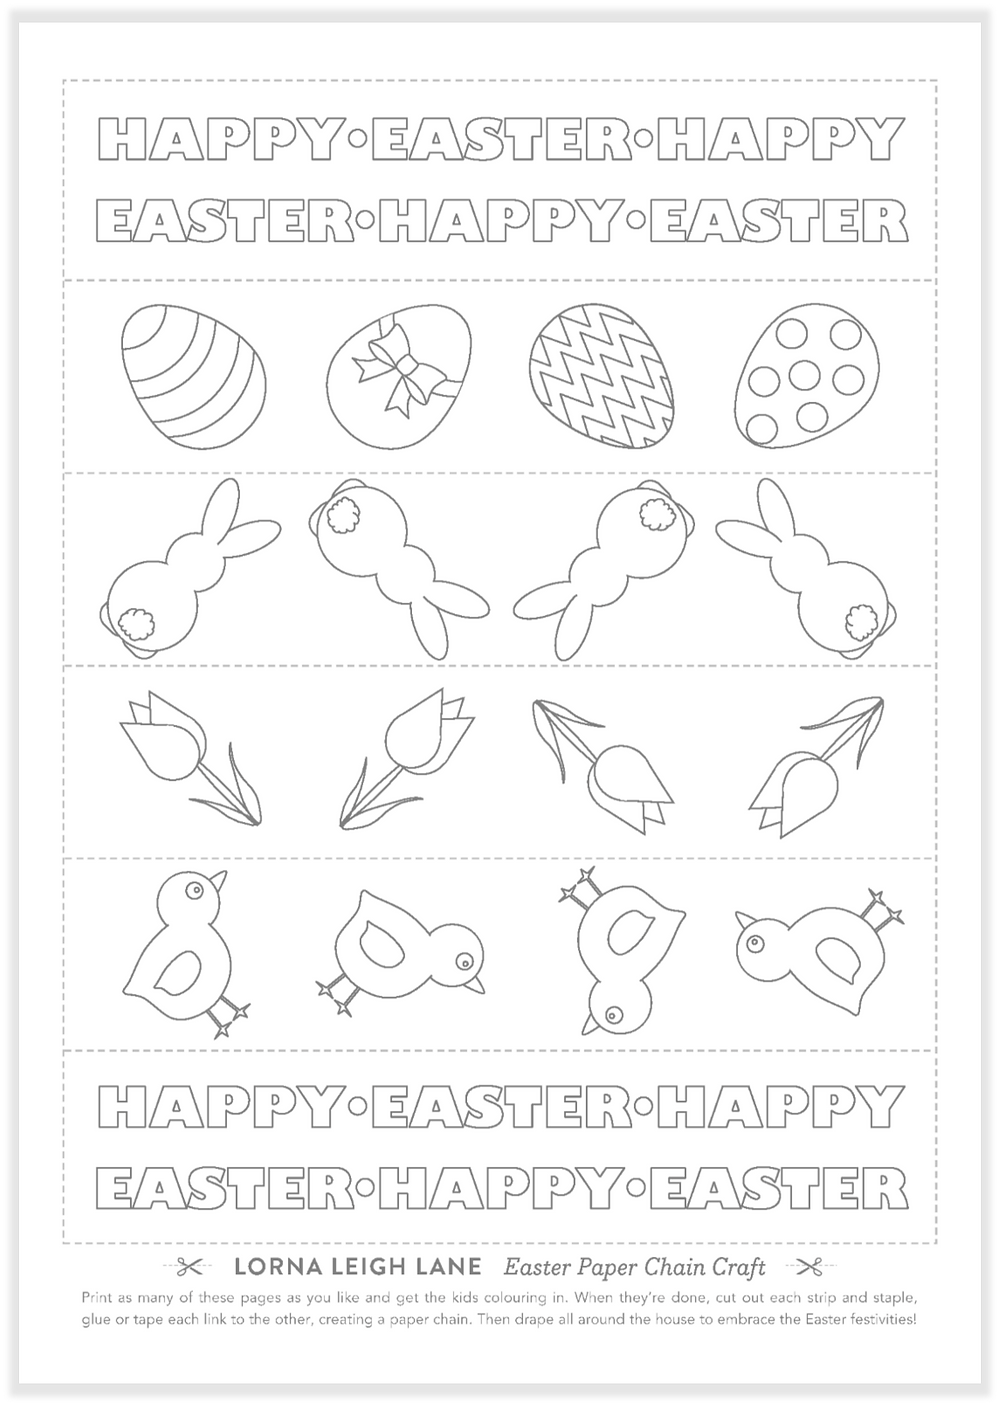 Free Easter paper chain craft for kids